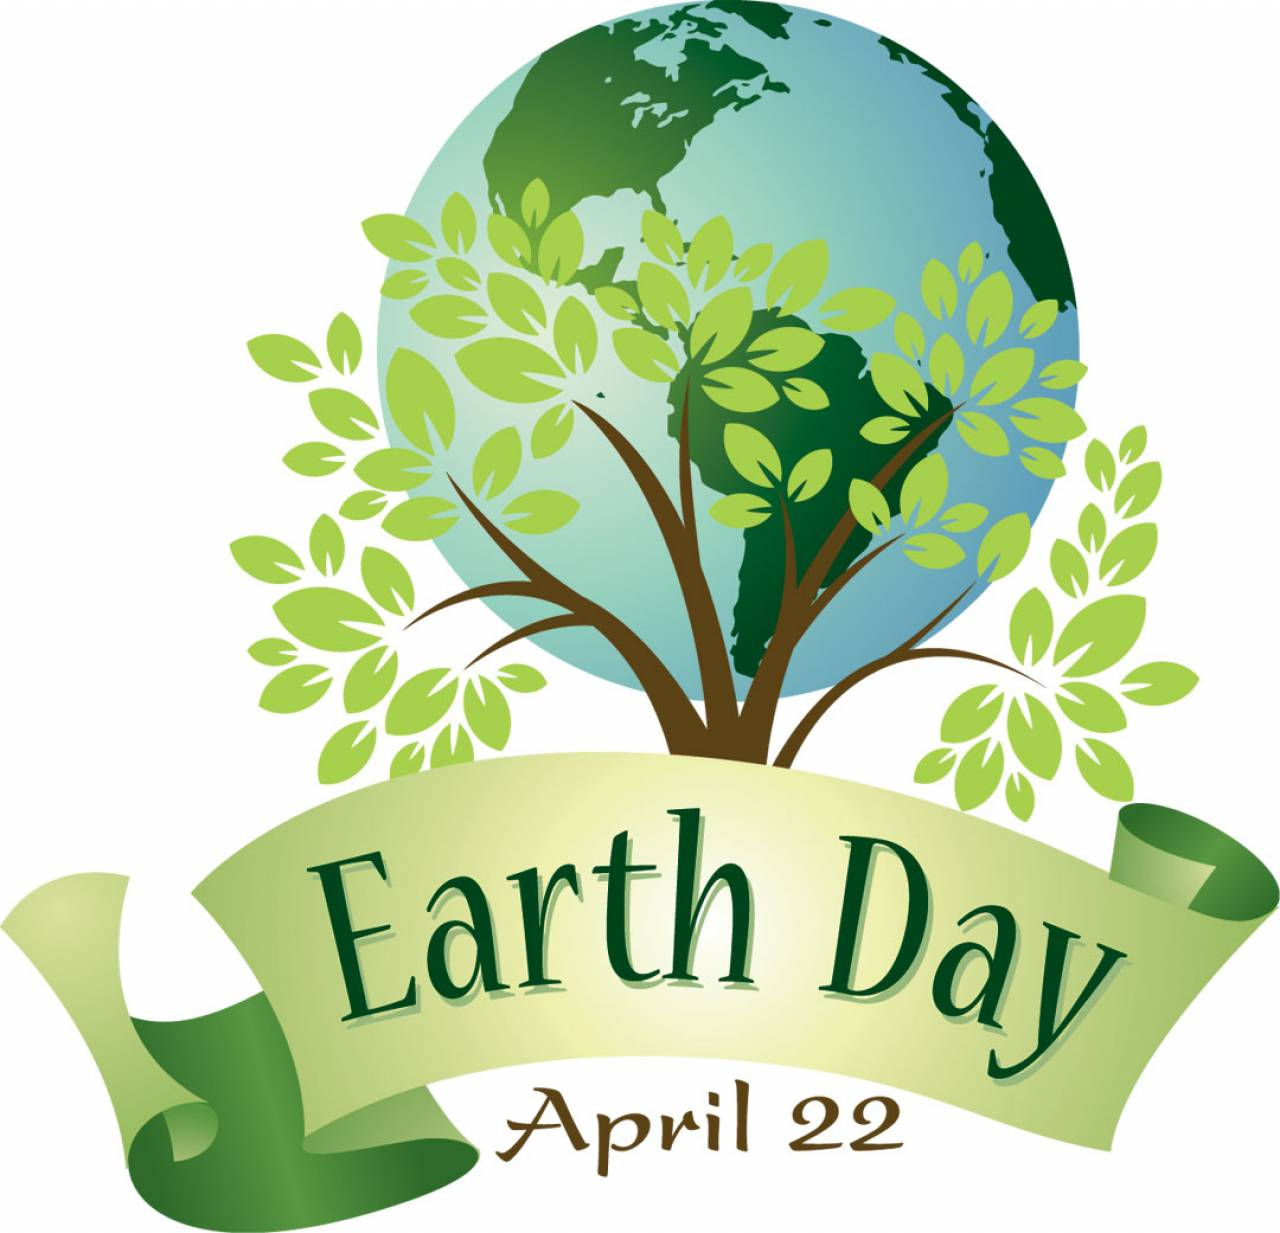 Earth Day April 22 Card